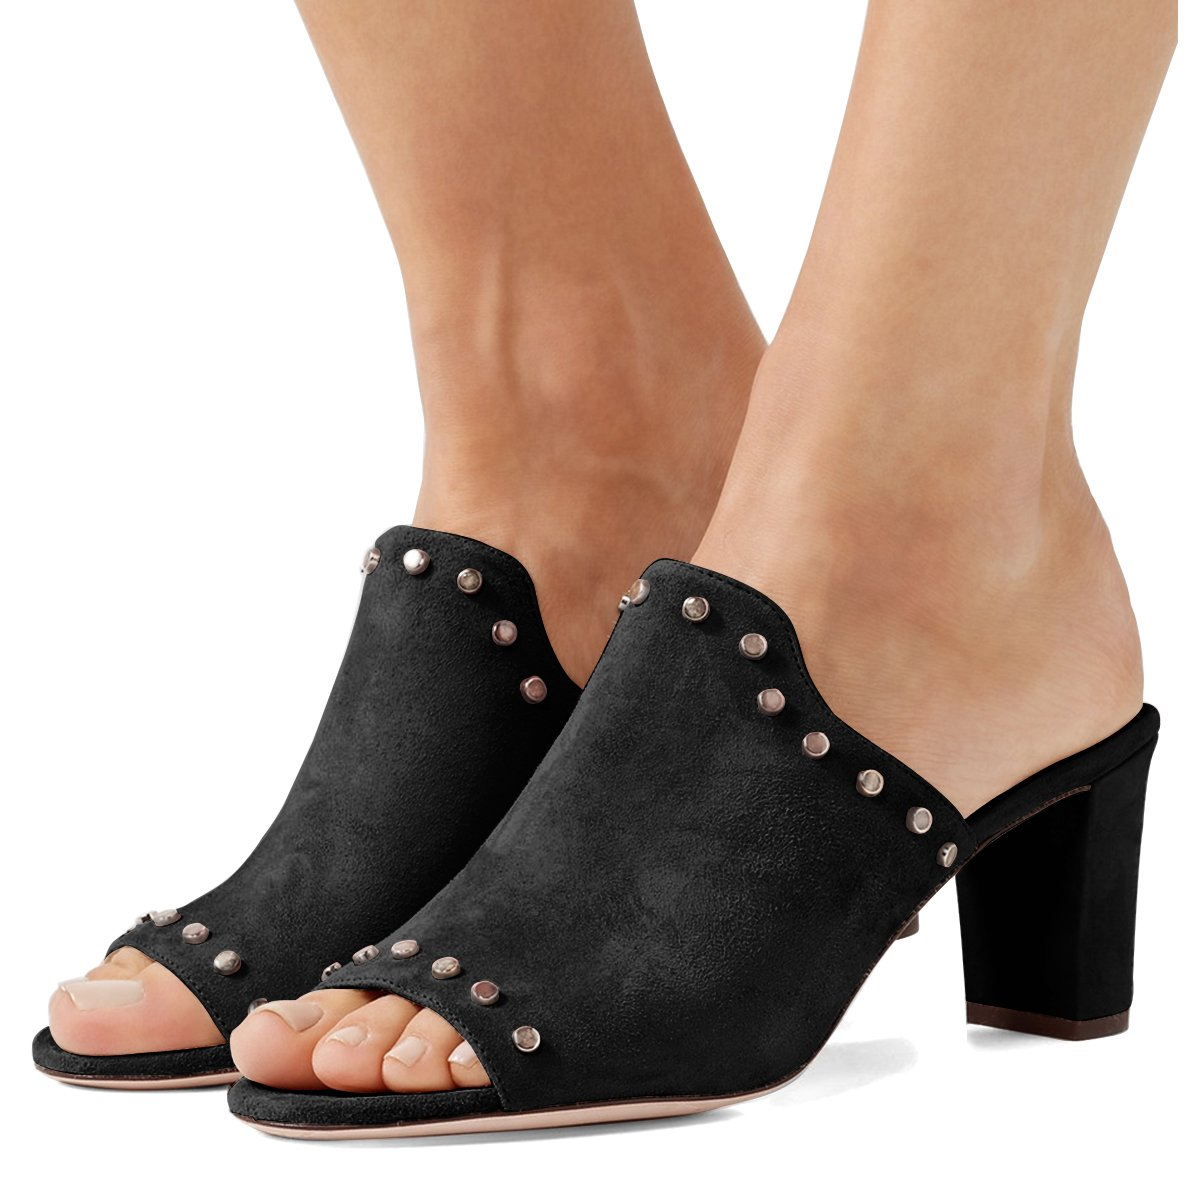 FSJ Women Peep Toe Mules Chunky Heeled Sandals with Studs Casual Slip On Summer Shoes Size 8.5 Black-Suede